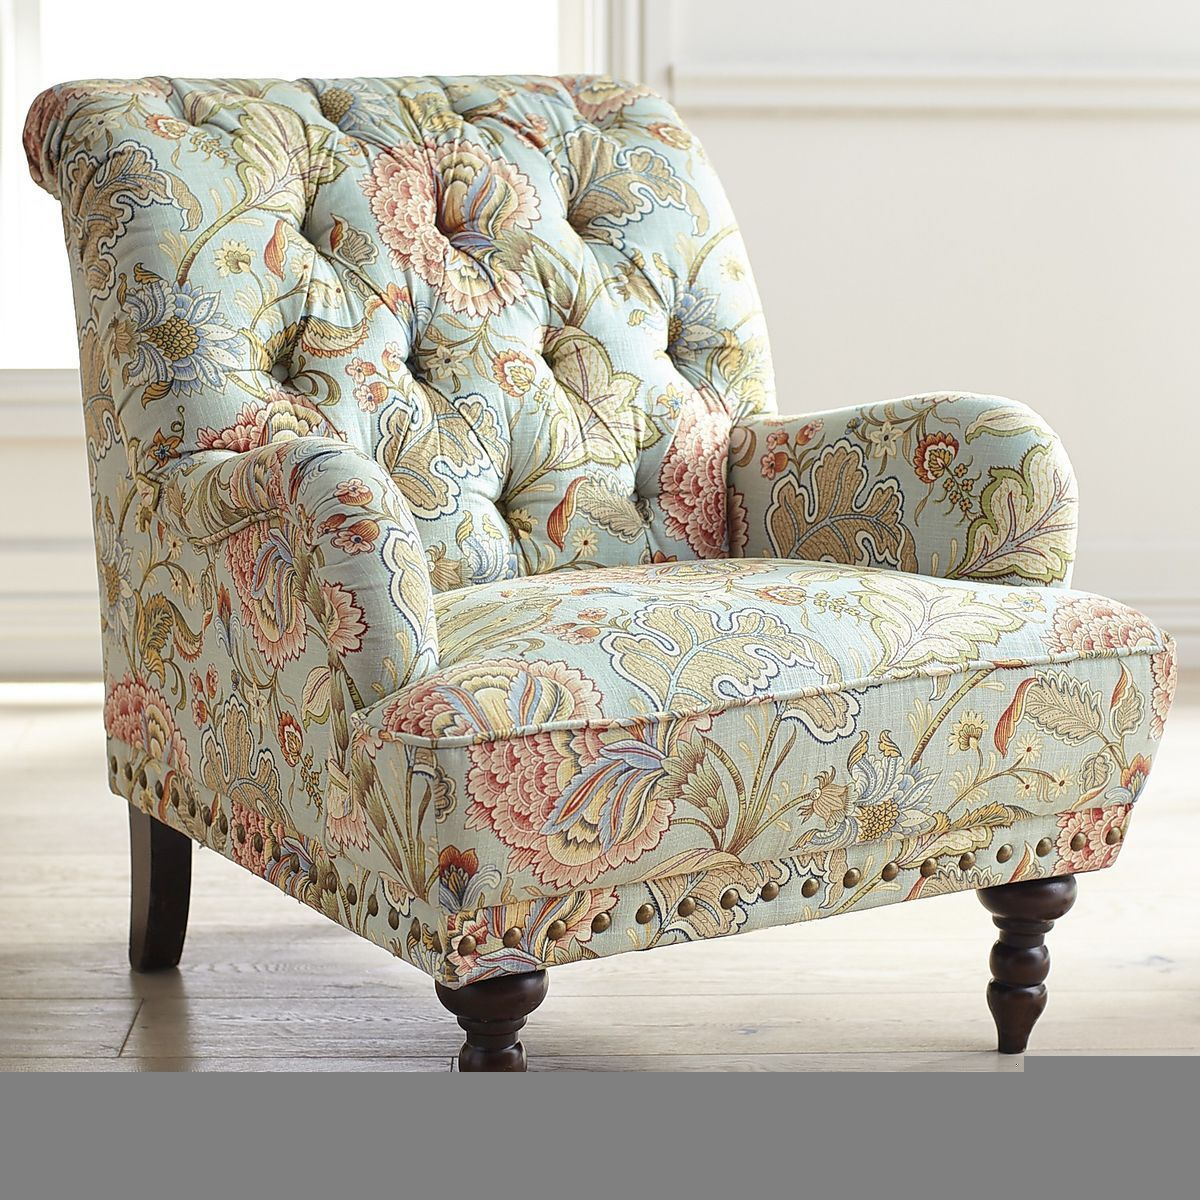 Chas Blue Floral Armchair | Floral armchair, Upholstered ...